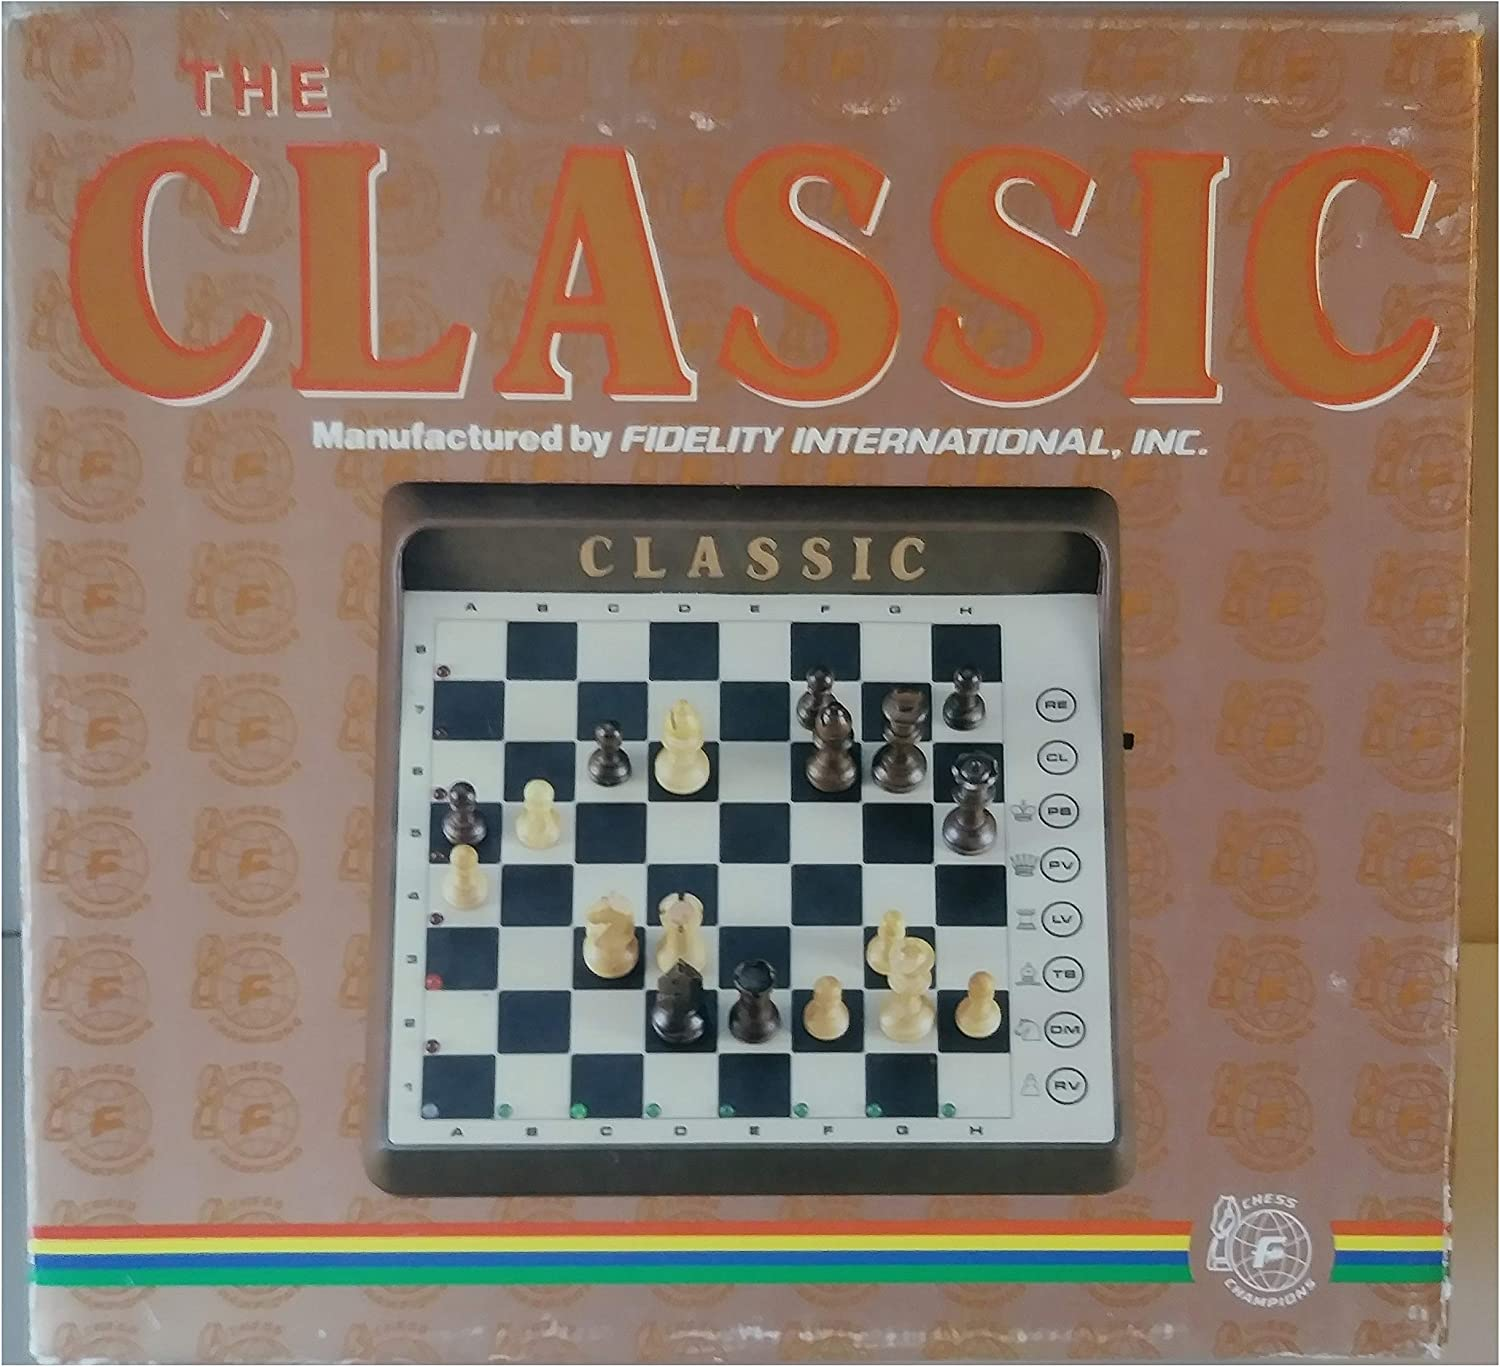 The Classic Vintage Fidelity Electronics - Electronic Chess Game